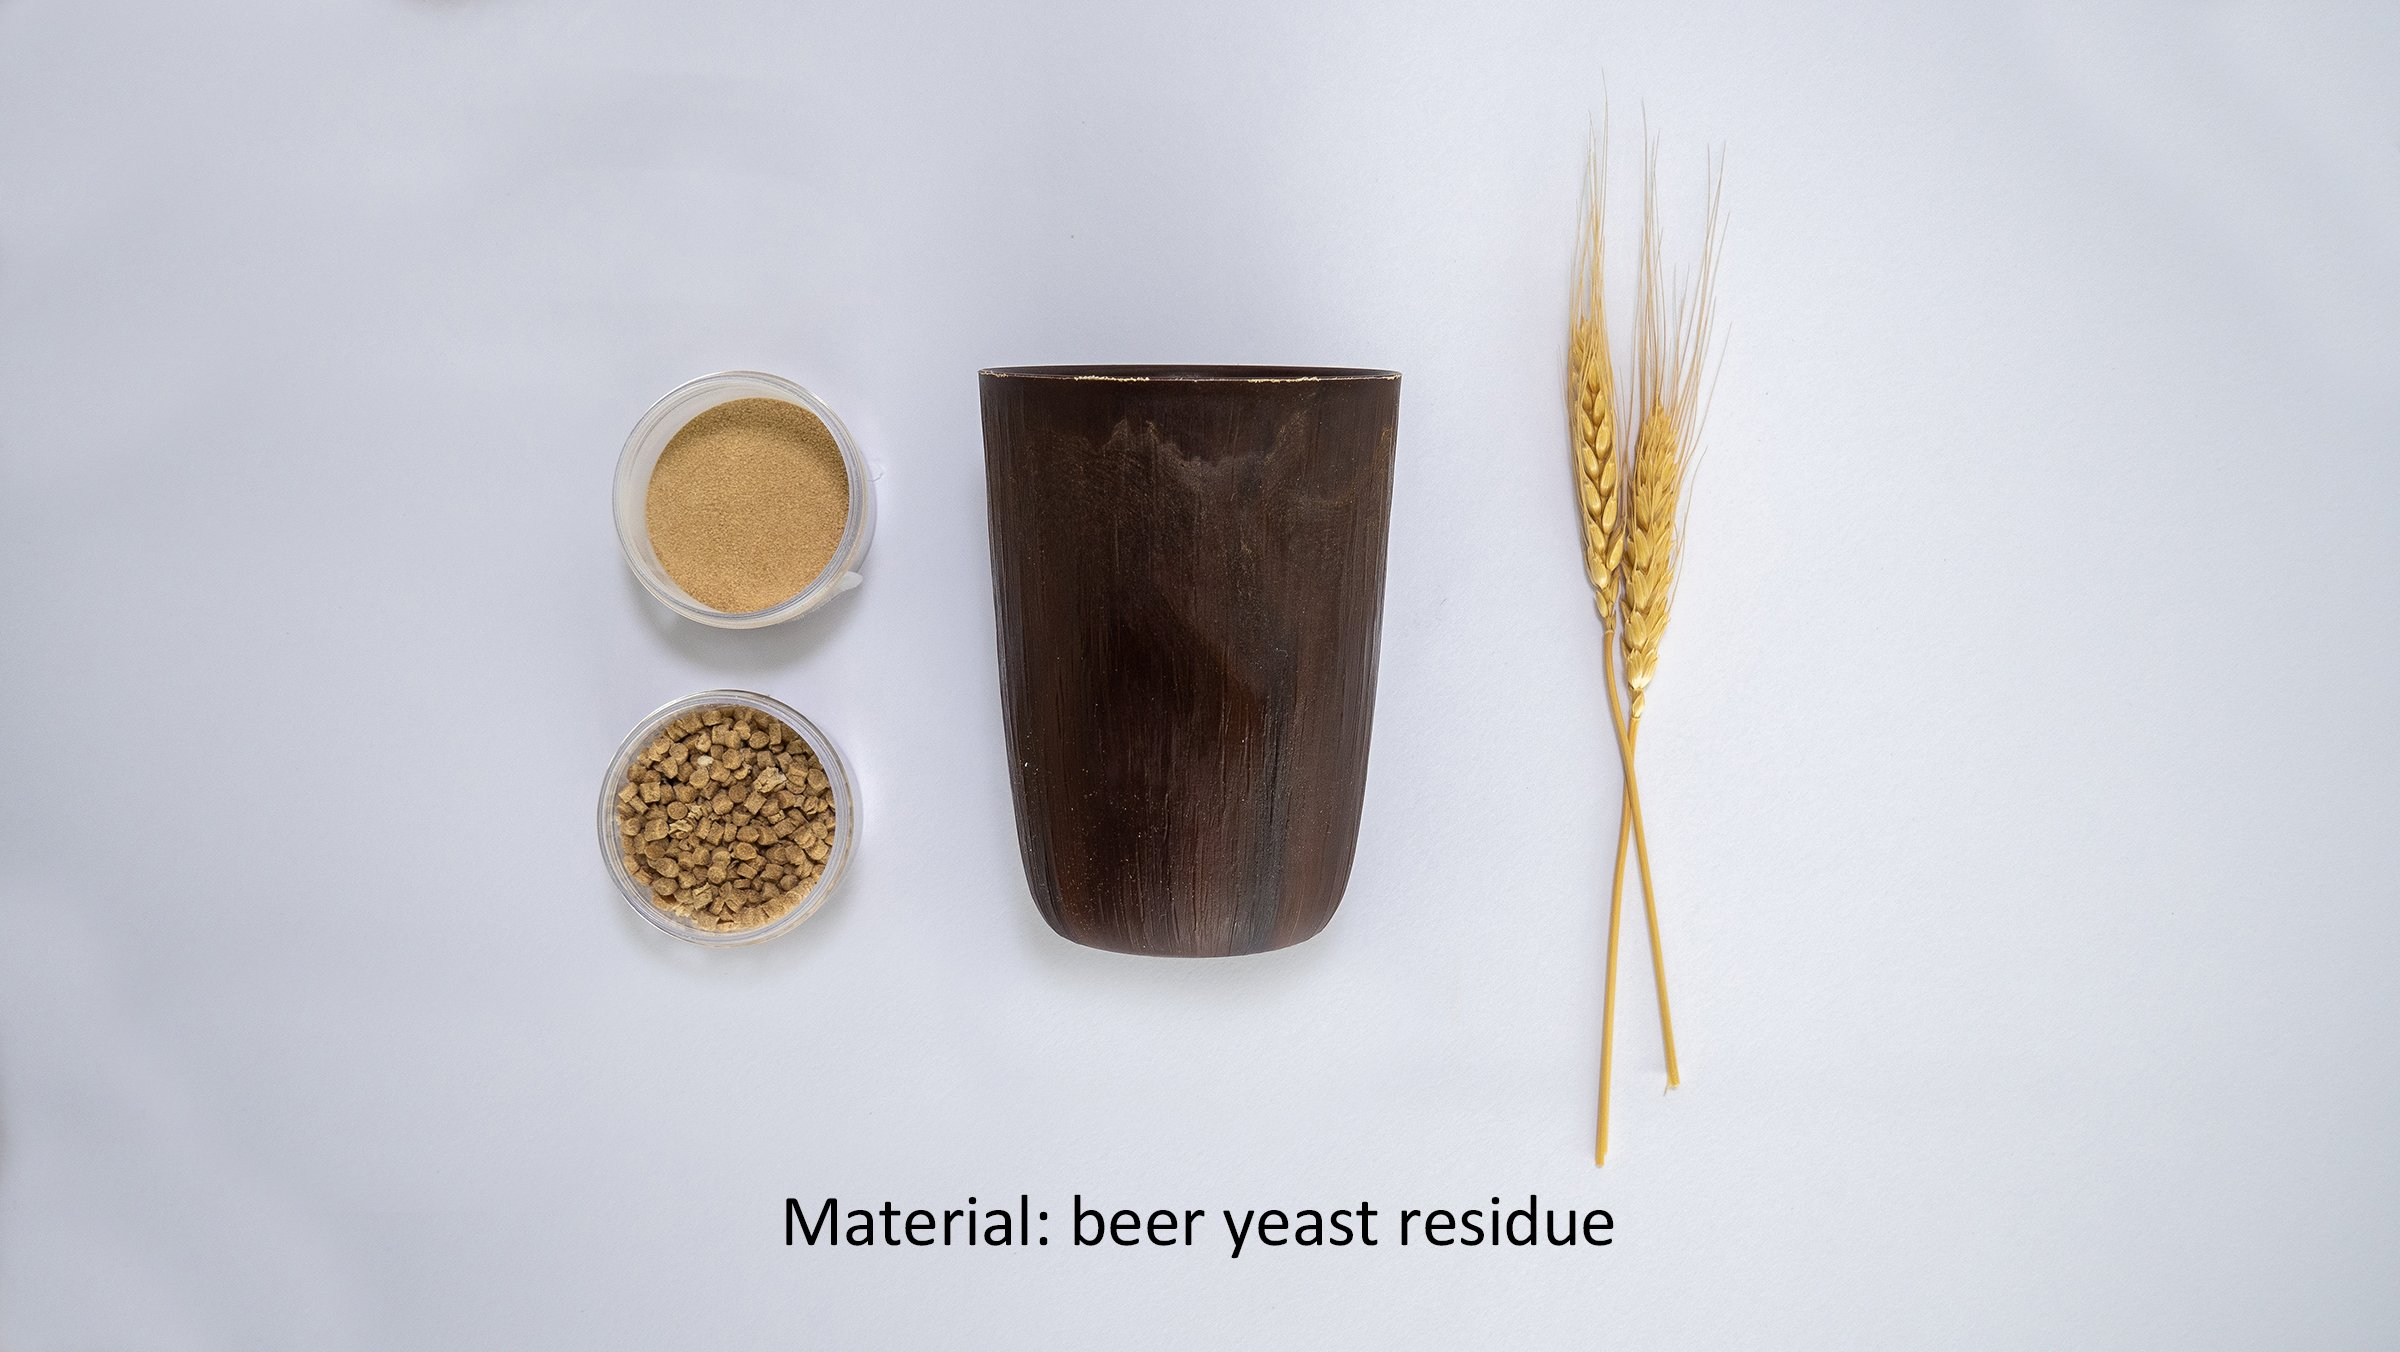 Photo: Reusable cups using cellulose fiber (material: beer yeast residue).